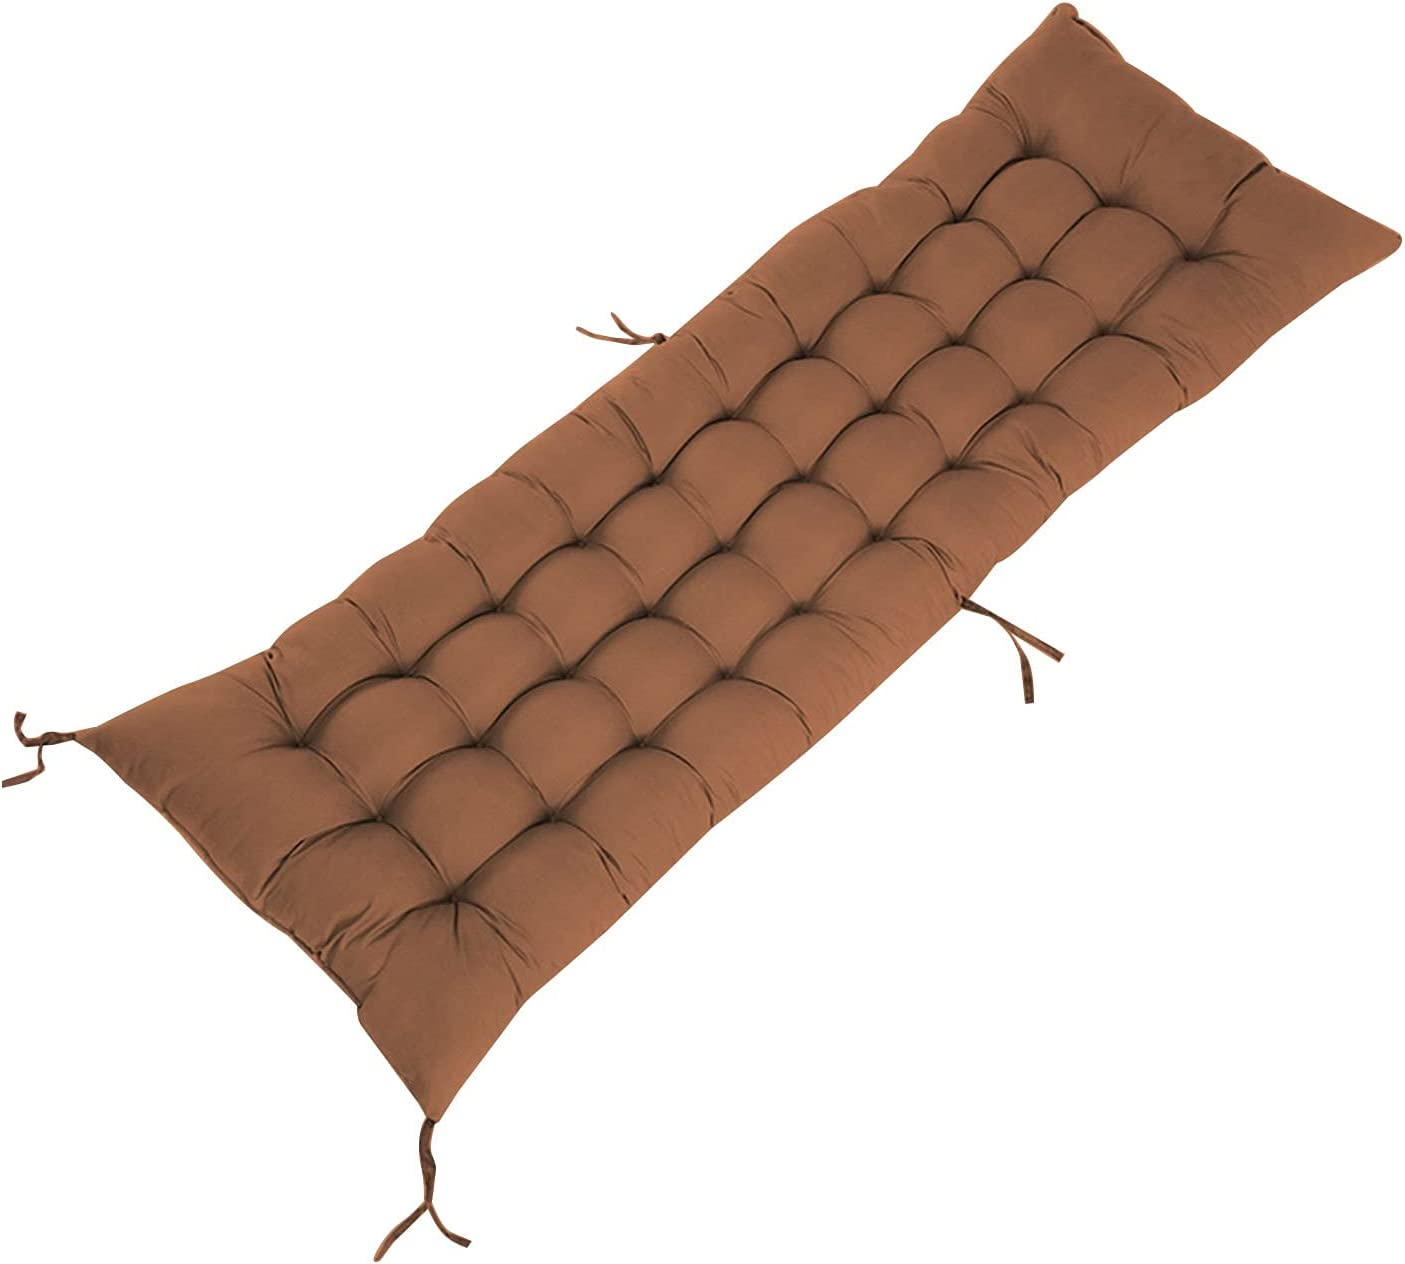 FORESTIME Bench Cushion Swing Cushion for Lounger Garden Furniture Patio Lounger,Lawn & Garden Patio Seating Cushions Indoor/Outdoor Pillows (Coffee)